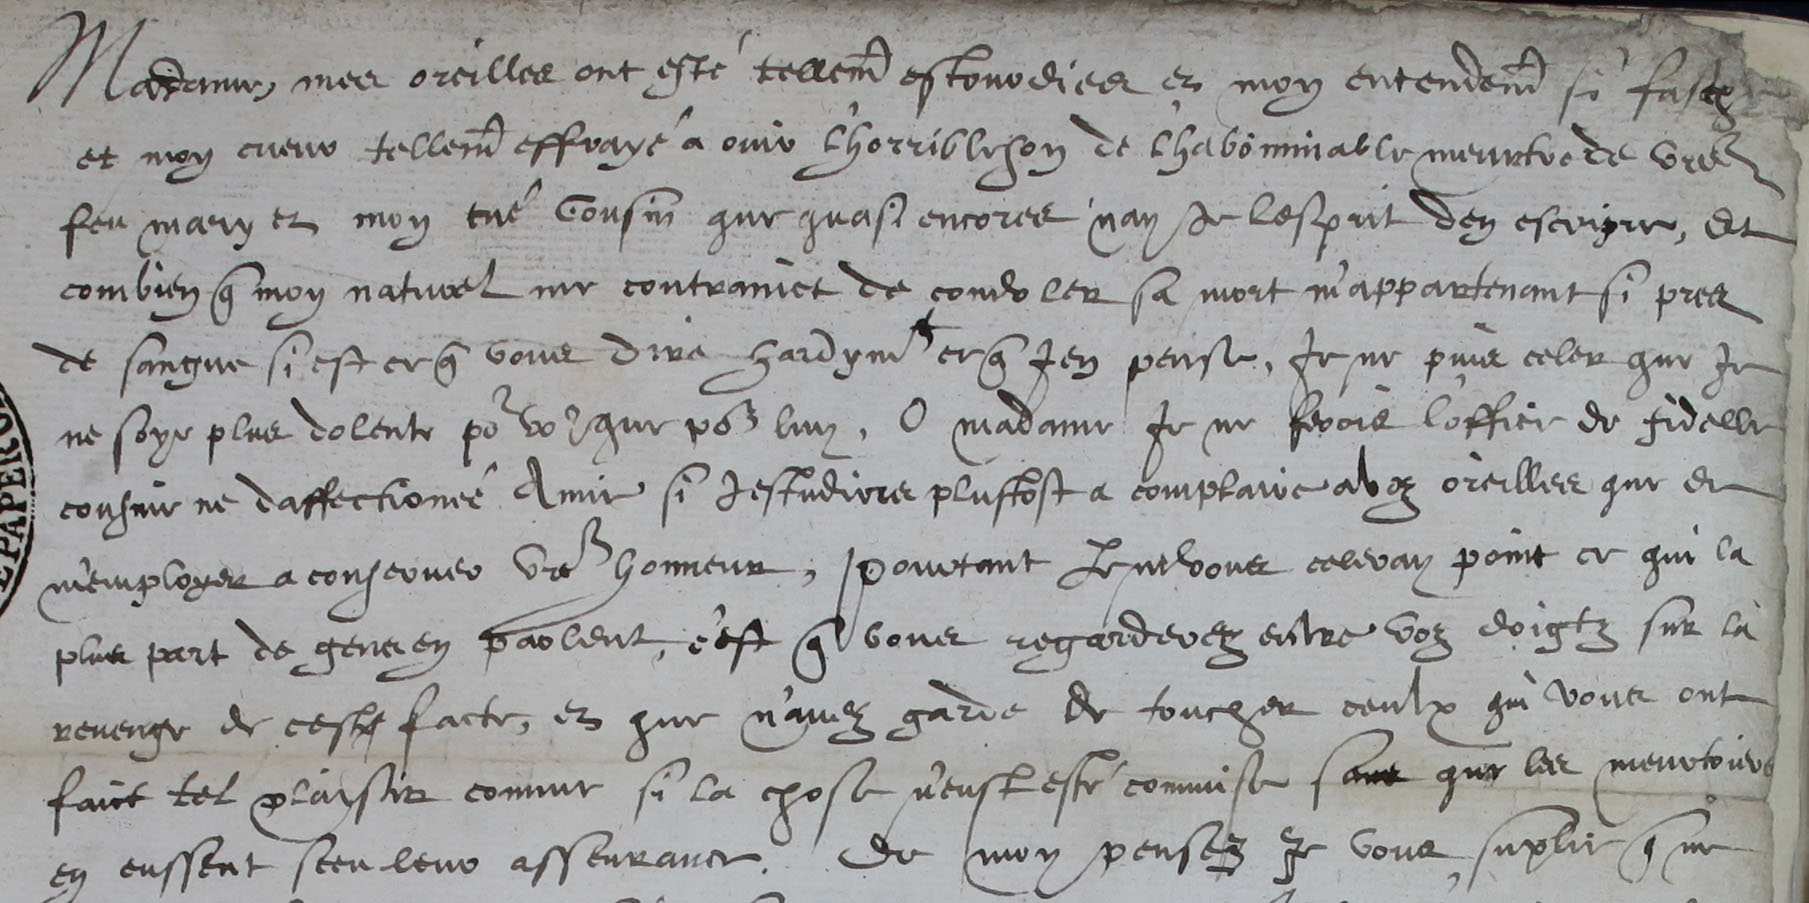 Elizabeth I to Mary Queen of Scots, 24 February 1567 (SP 52/13 f.17)